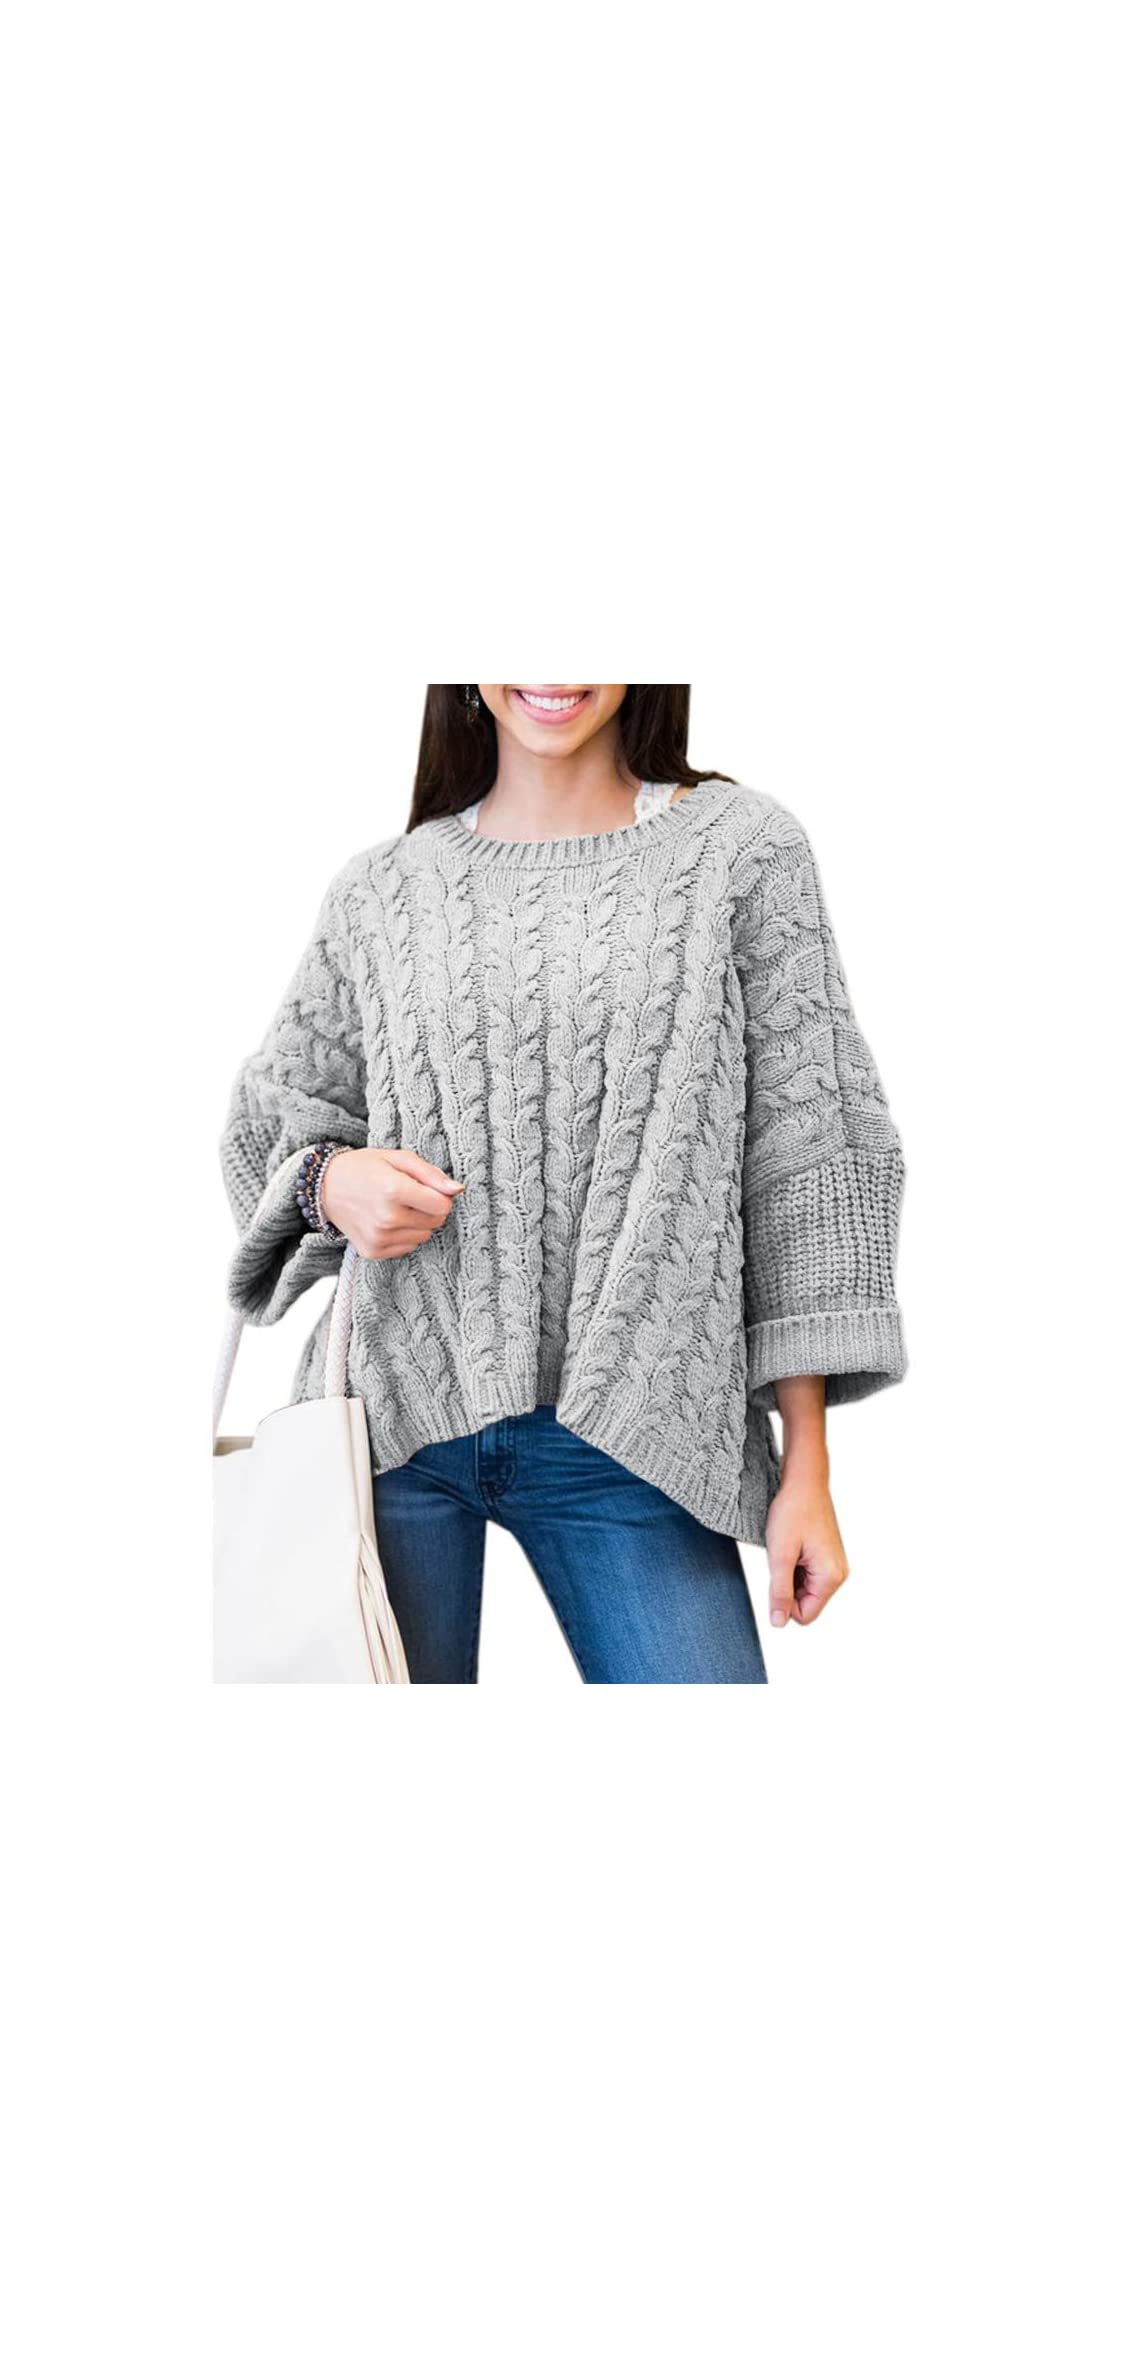 Womens Oversized Sweaters Plus Size Long Sleeve Cable Knit Tops